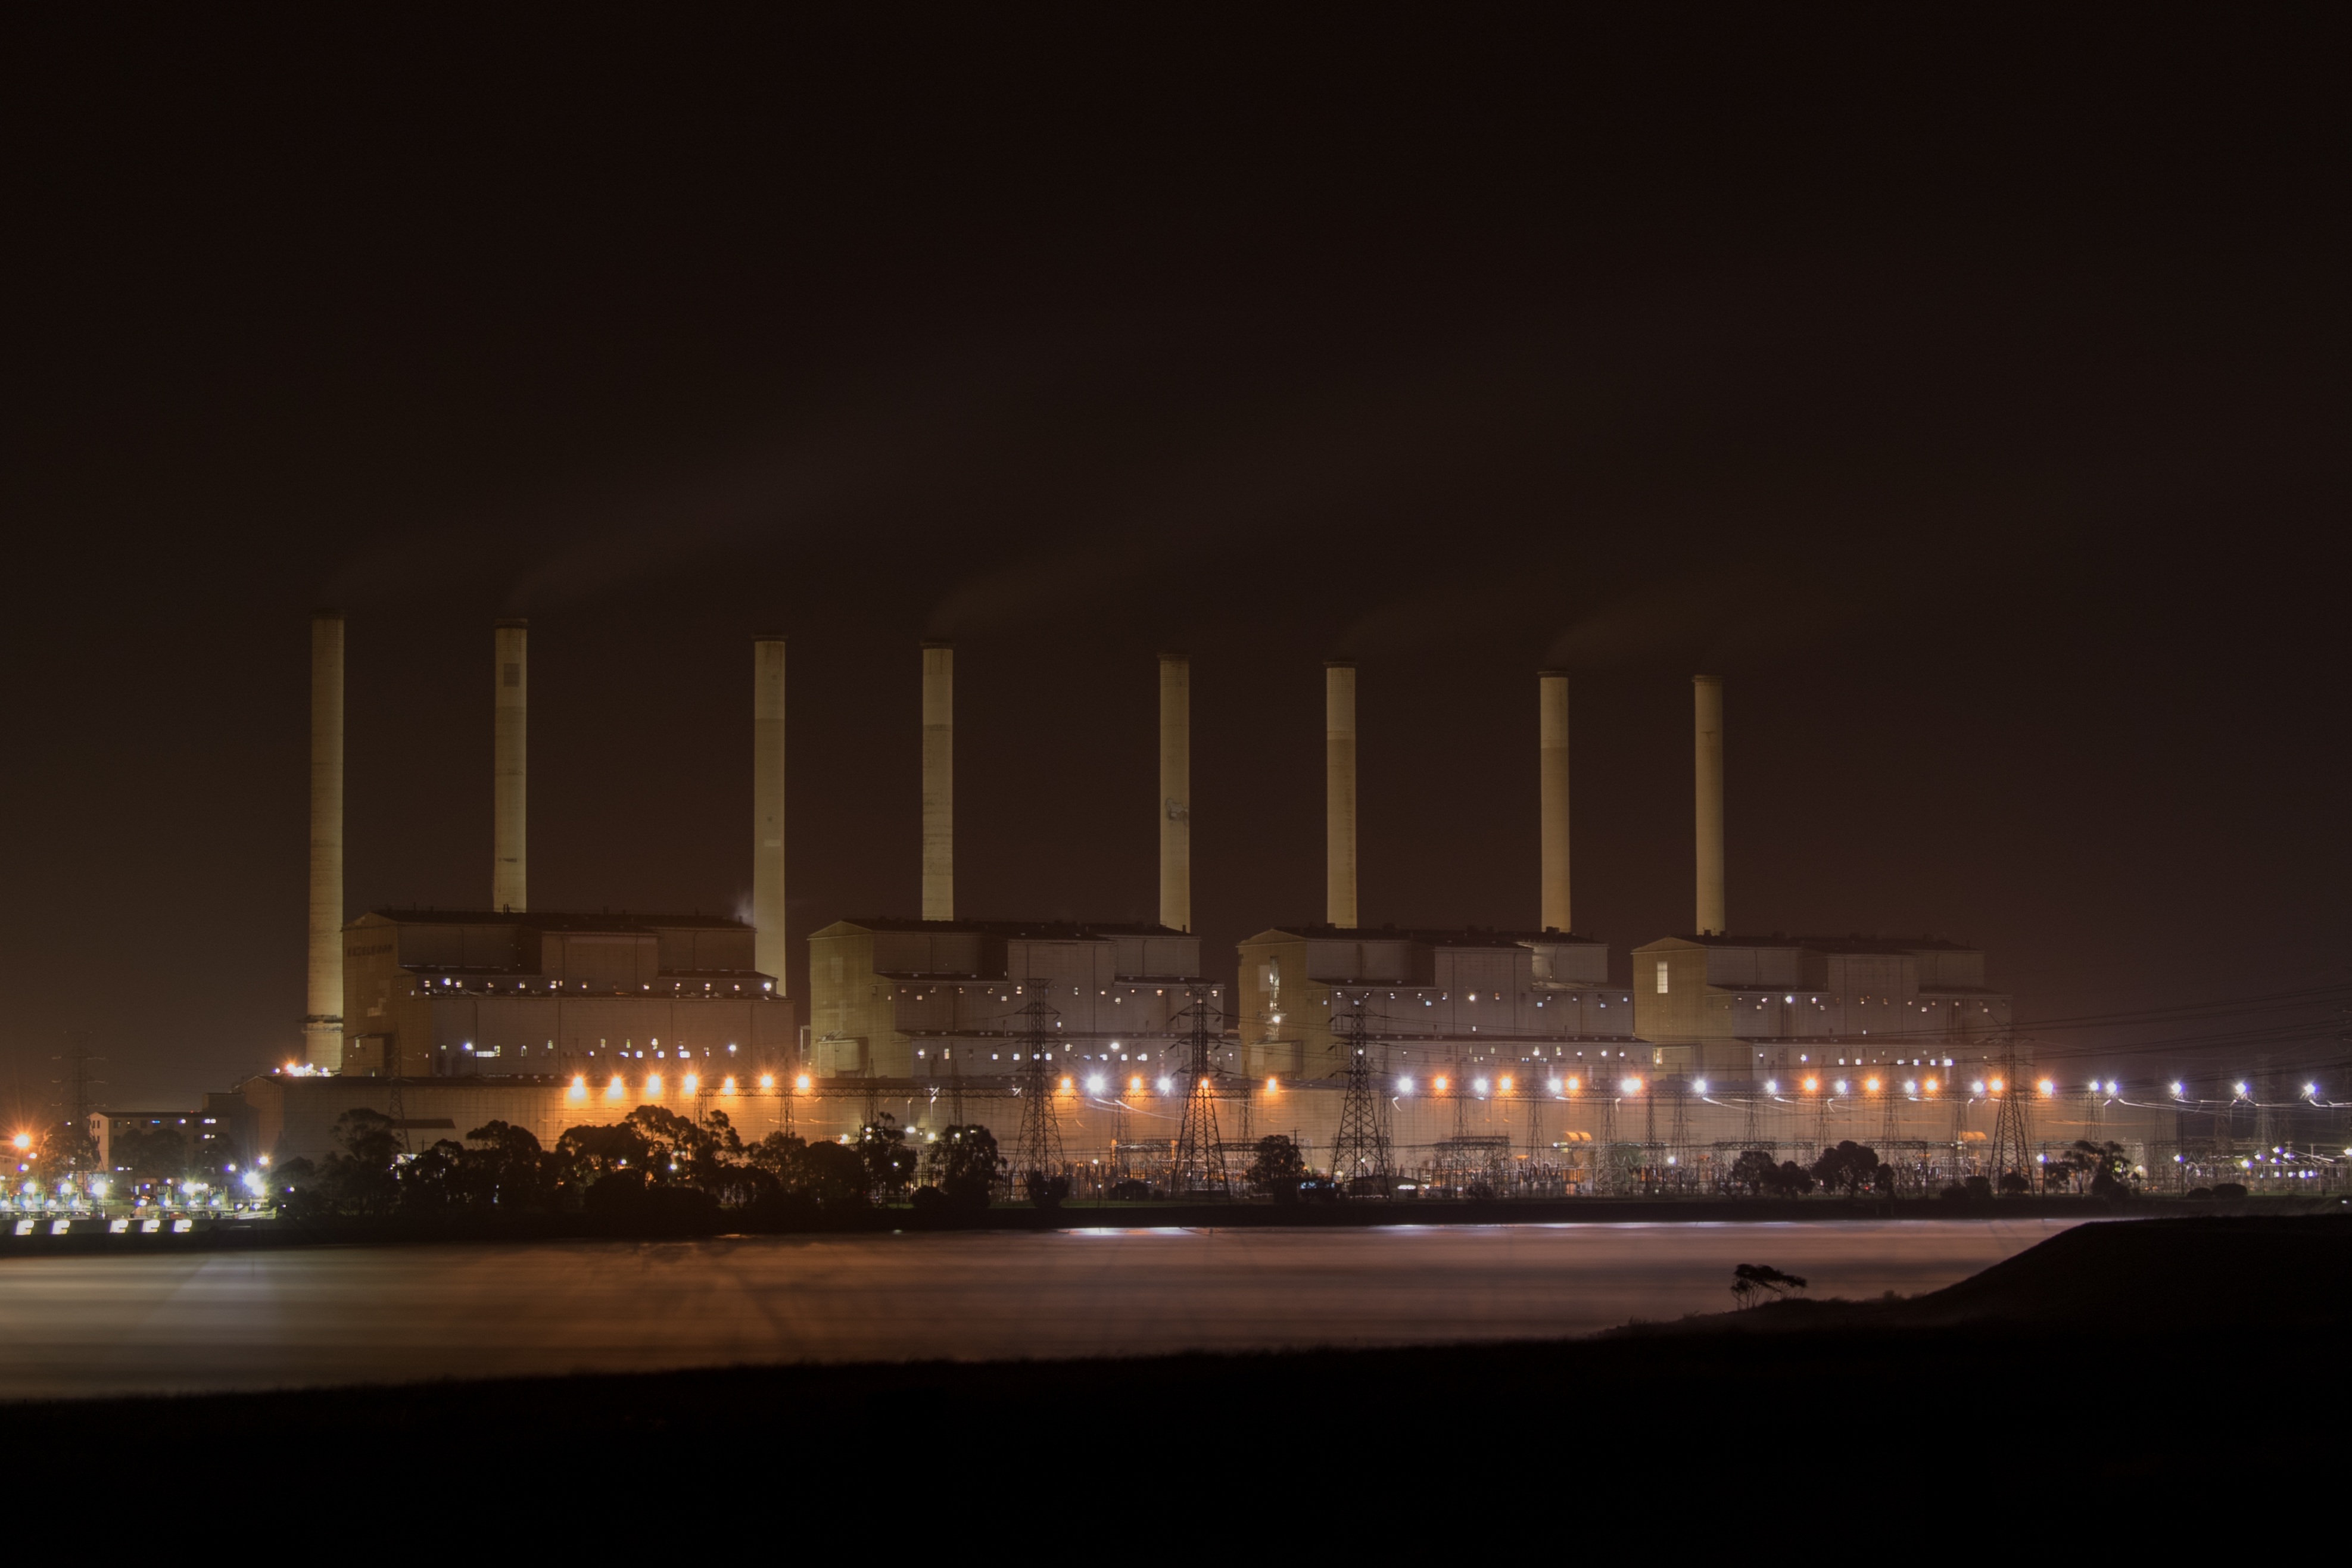 http://upload.wikimedia.org/wikipedia/commons/4/49/Hazelwoodpowerstationatnight.jpg